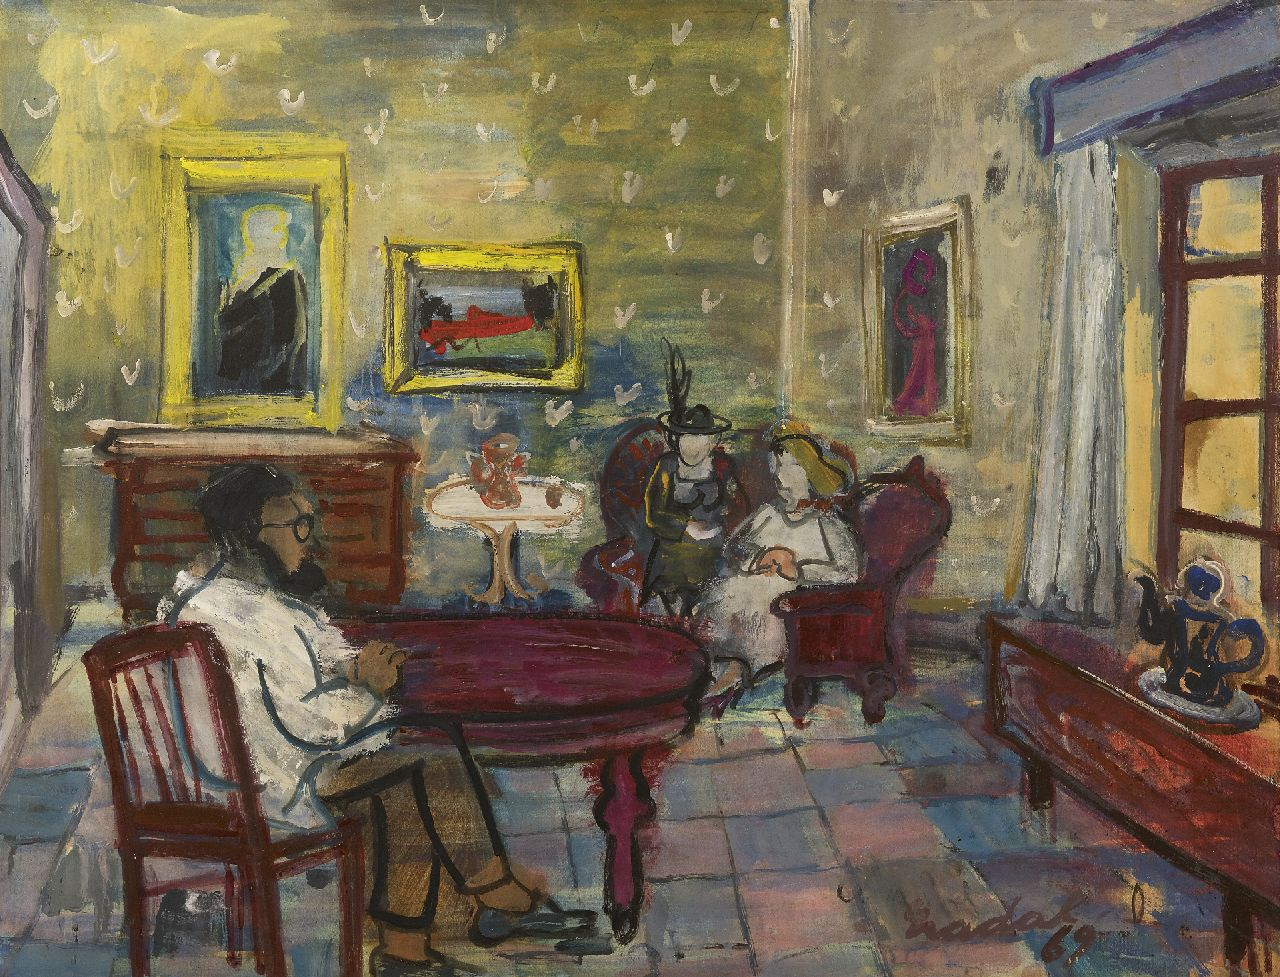 Carlos Nadal | Interior with figures, oil on paper laid down on canvas, 49.9 x 65.0 cm, signed l.r. and dated '69